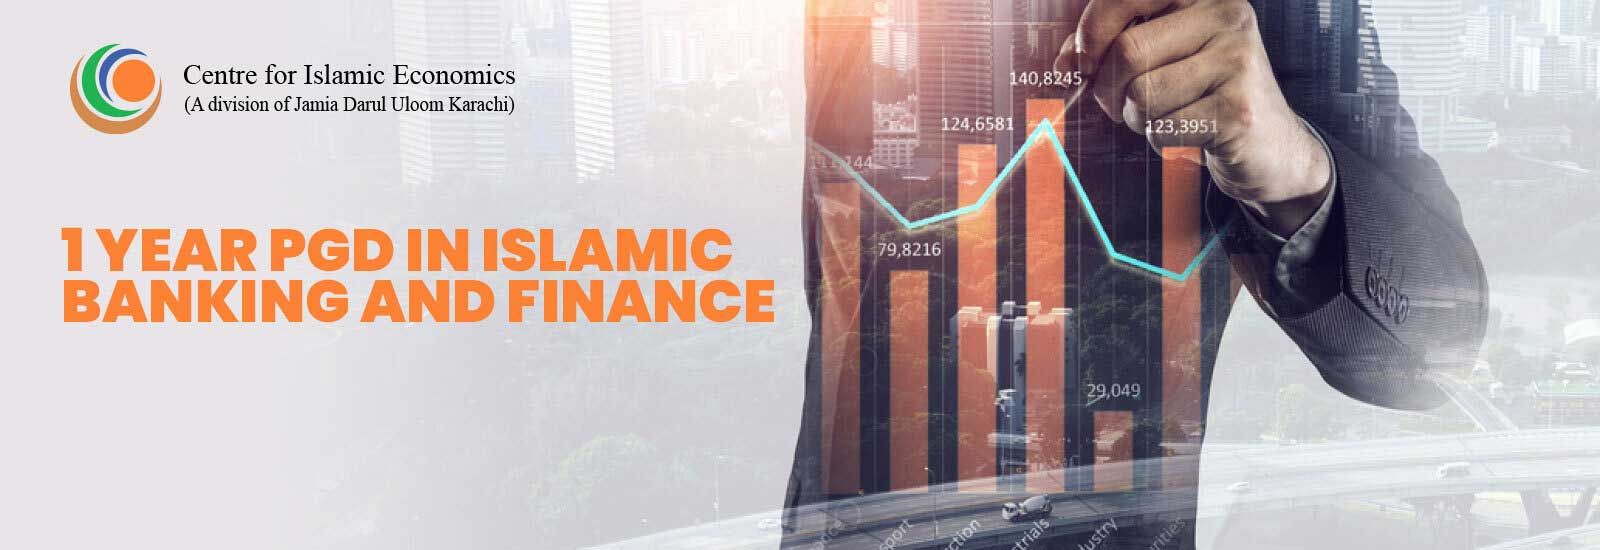 1 year PGD in Islamic Banking and Finance